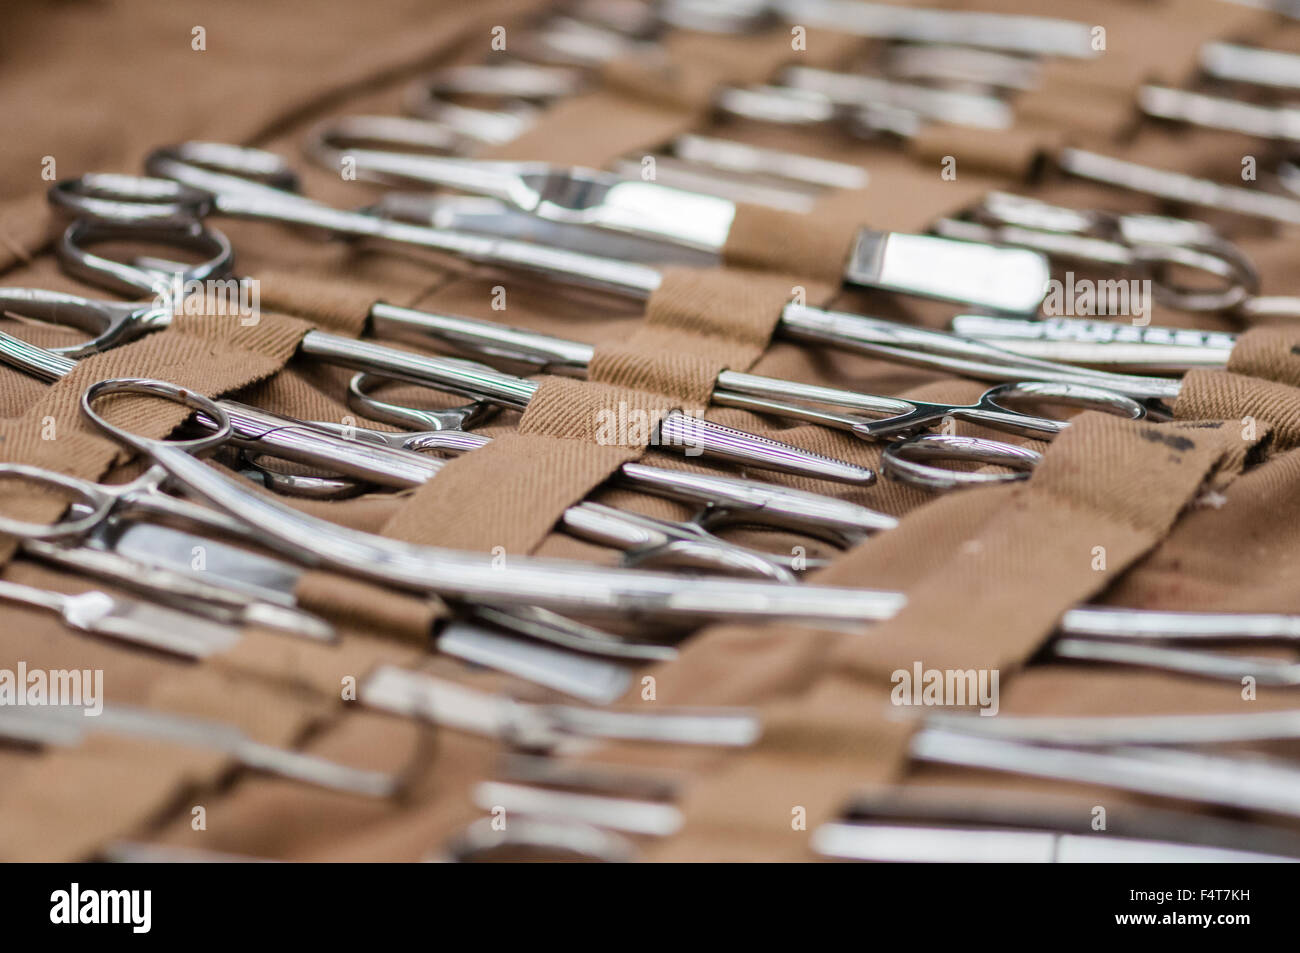 Large selection of stainless steel surgical equipment, including Magill and artery forceps, tweezers, retractors - Stock Image